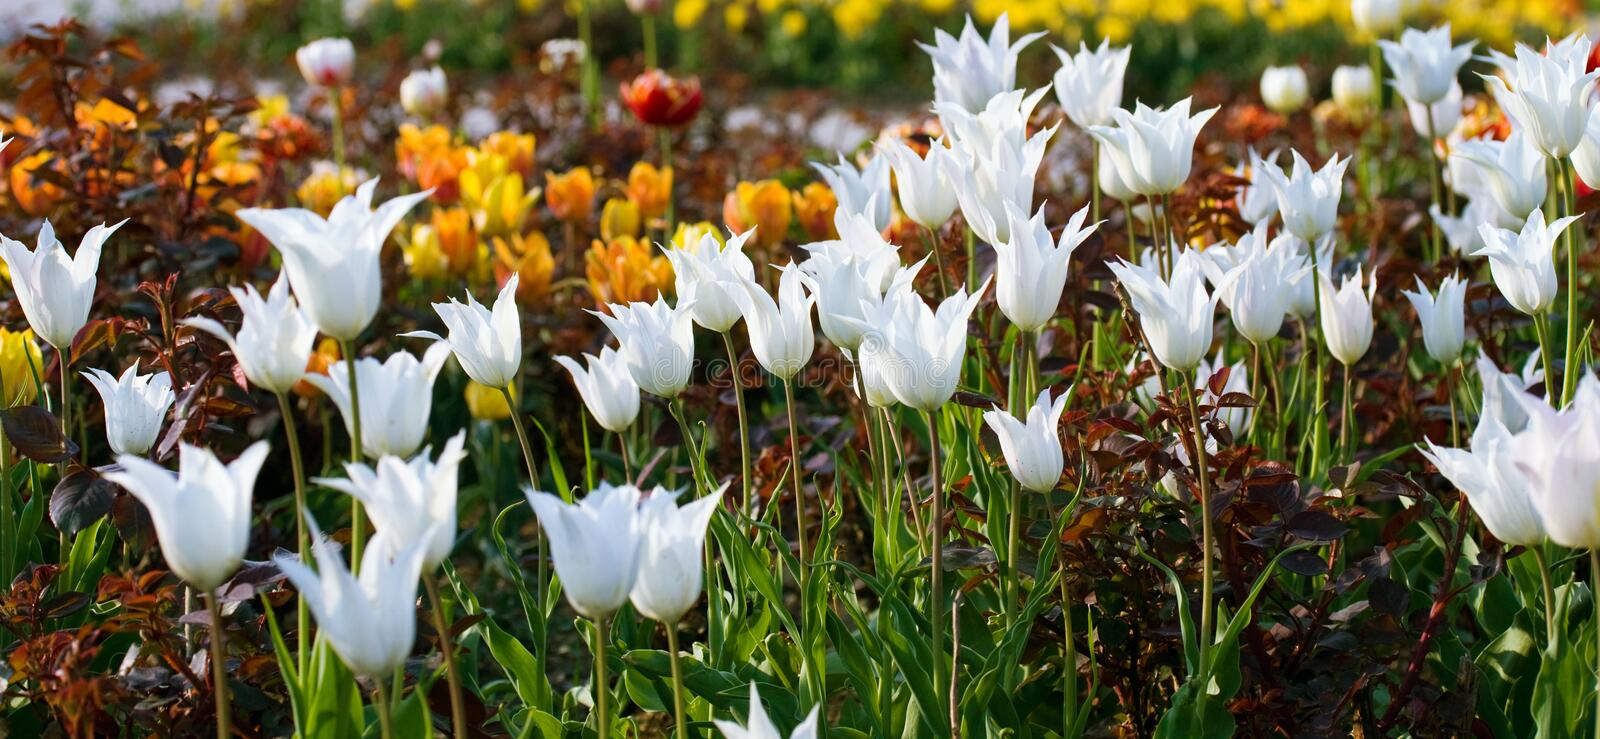 Download White  tulip flowers. stock image. Image of meadow, bloom - 12493781